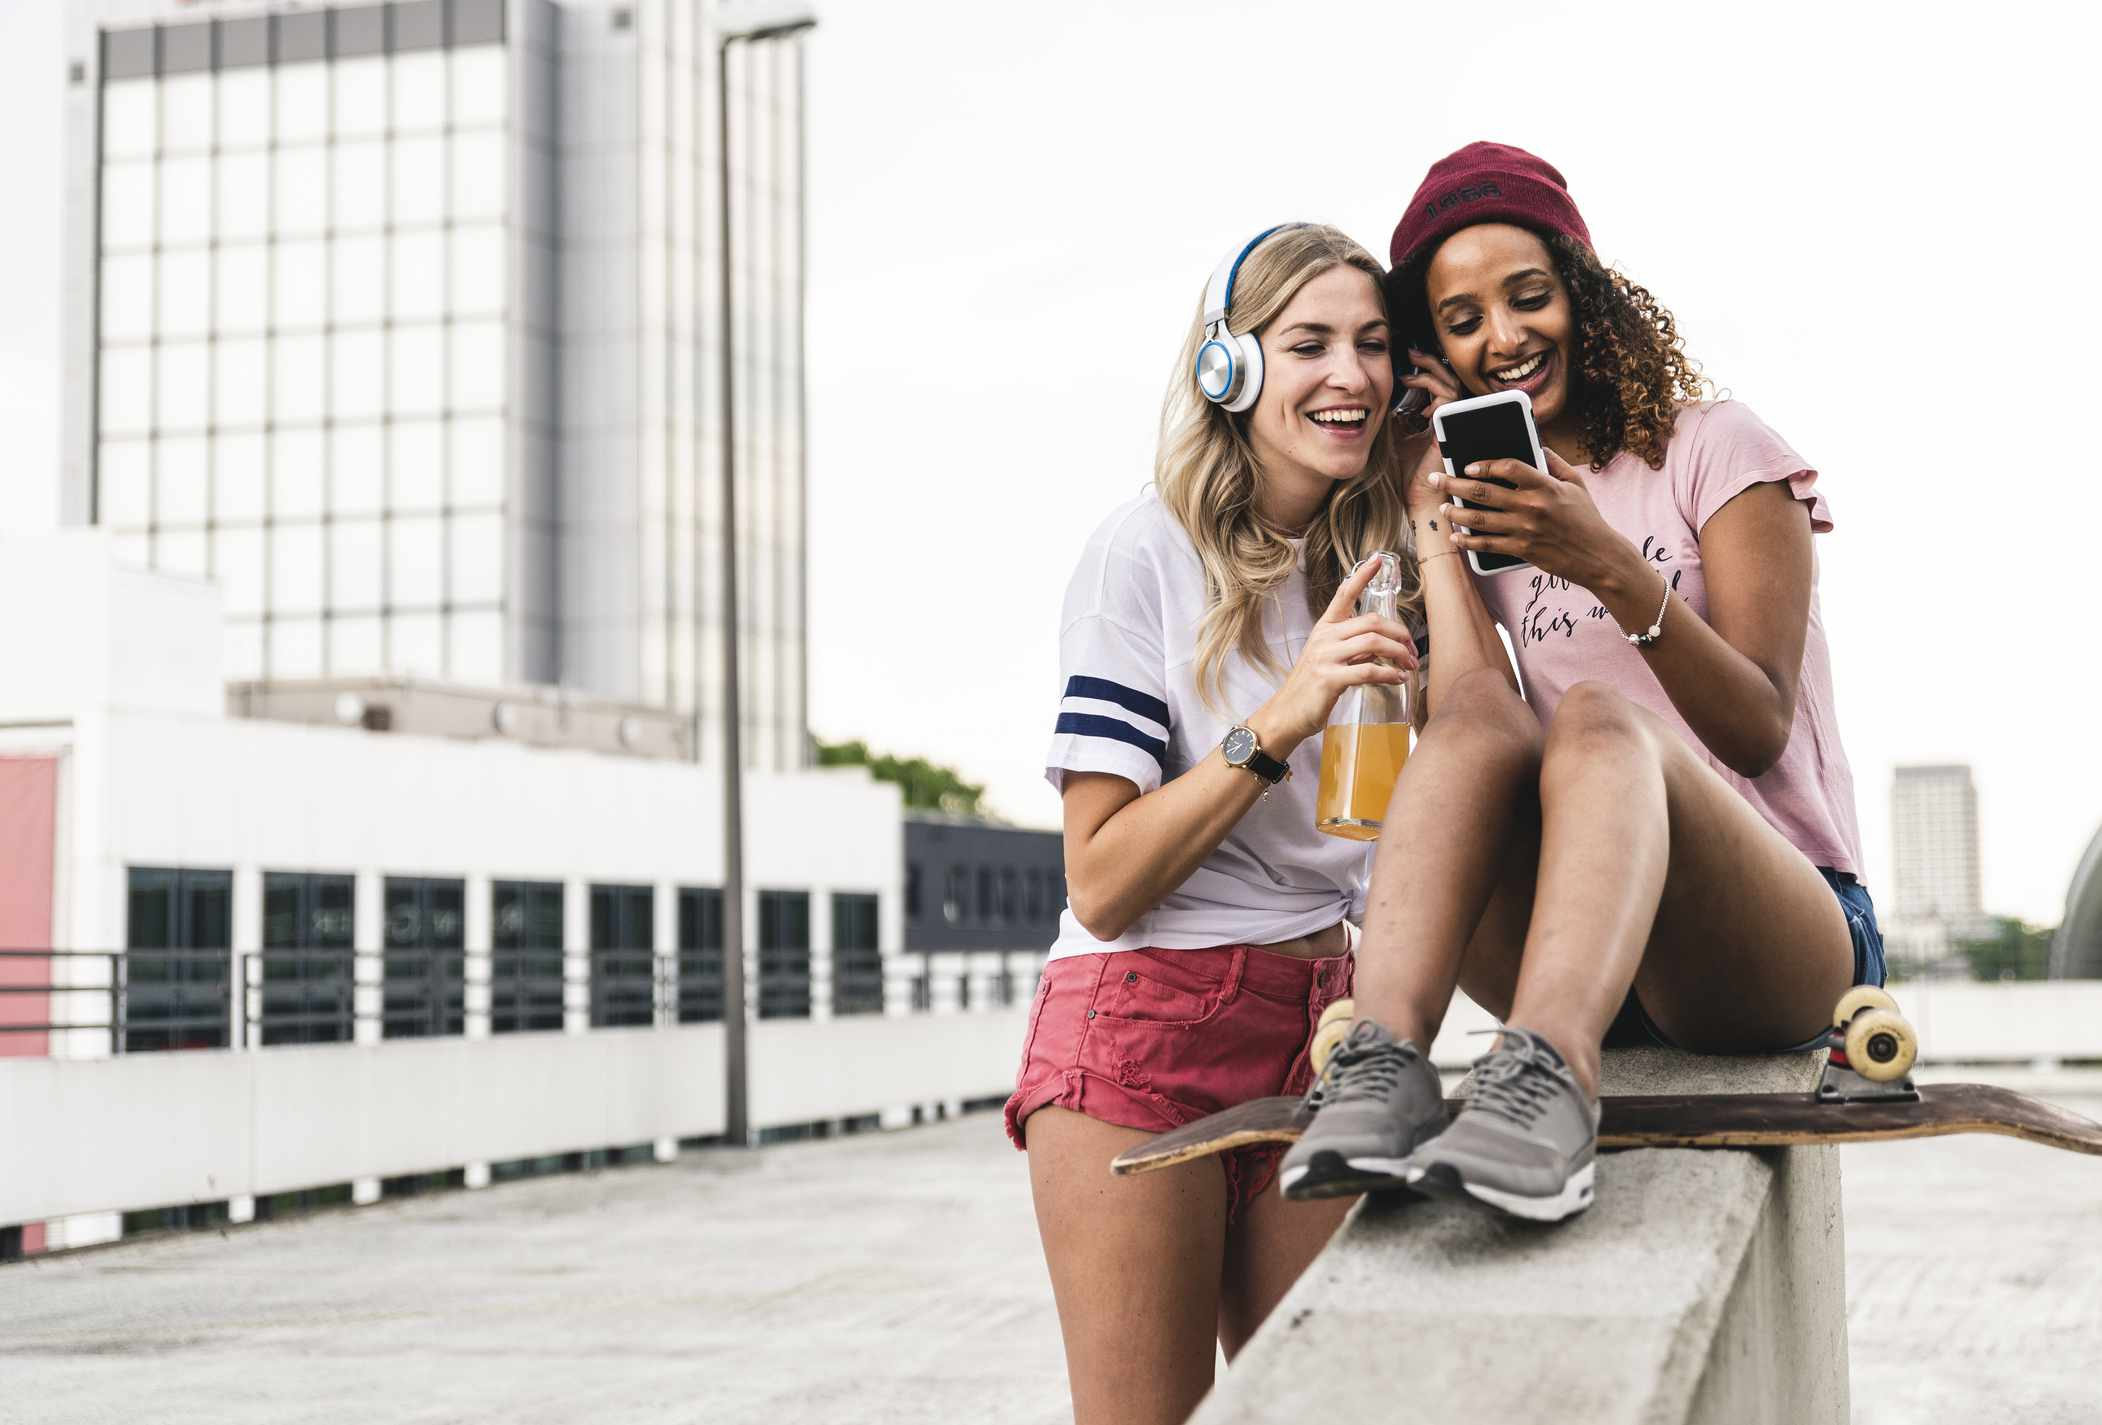 Two friends, with a skateboard, listening to music together.